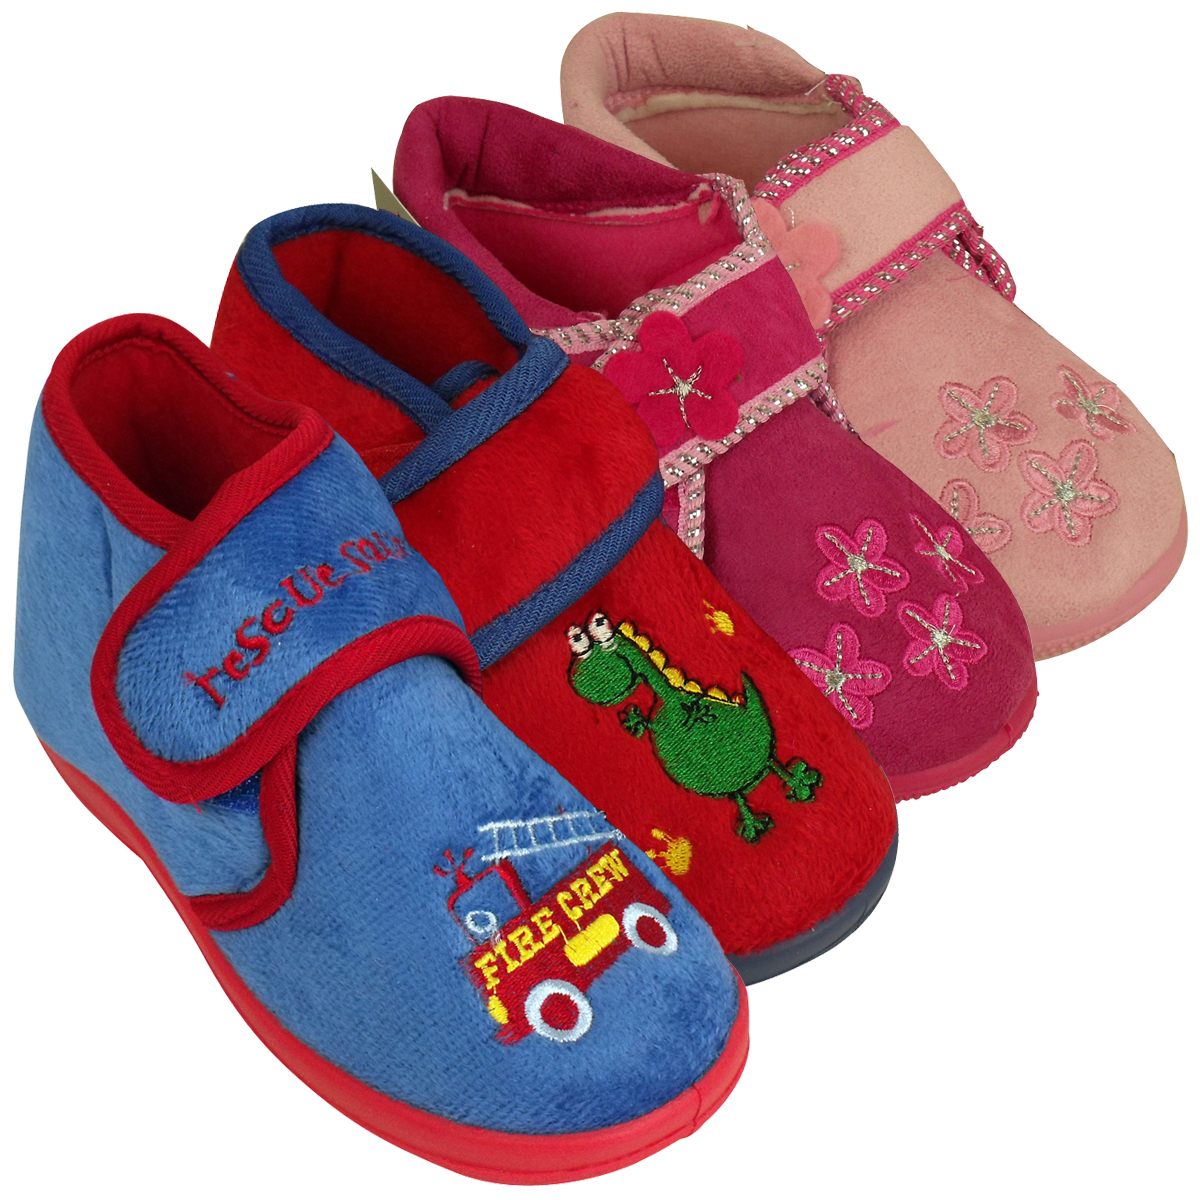 For some reason, kids love walking around barefoot, and in the cold months, we freeze just looking at our kids' feet. End the era of cold feet by scooping up one of these cozy pairs of slippers.